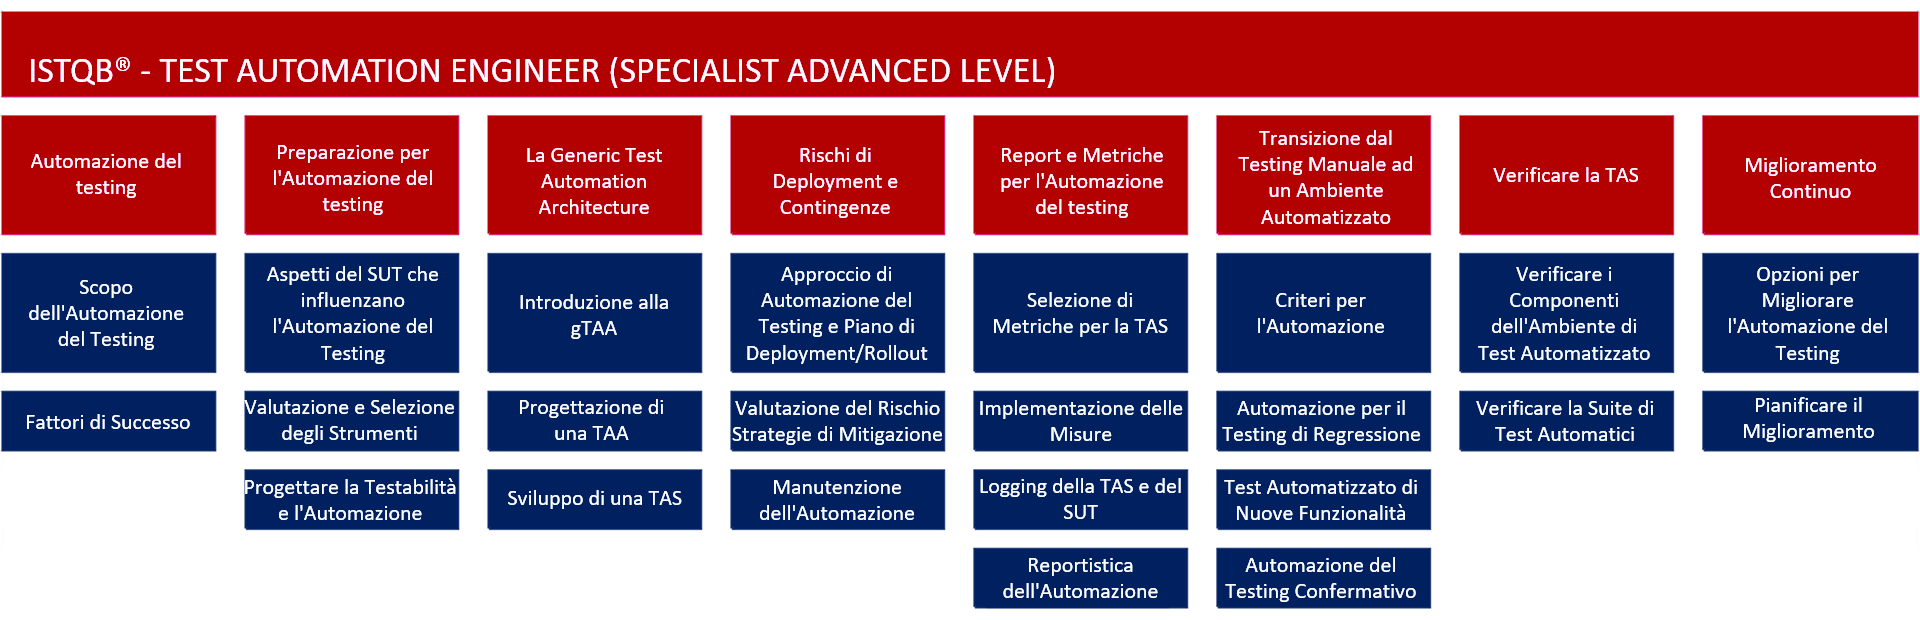 Contenuti della certificazione (Specialist) Advanced Level Test Automation Engineer